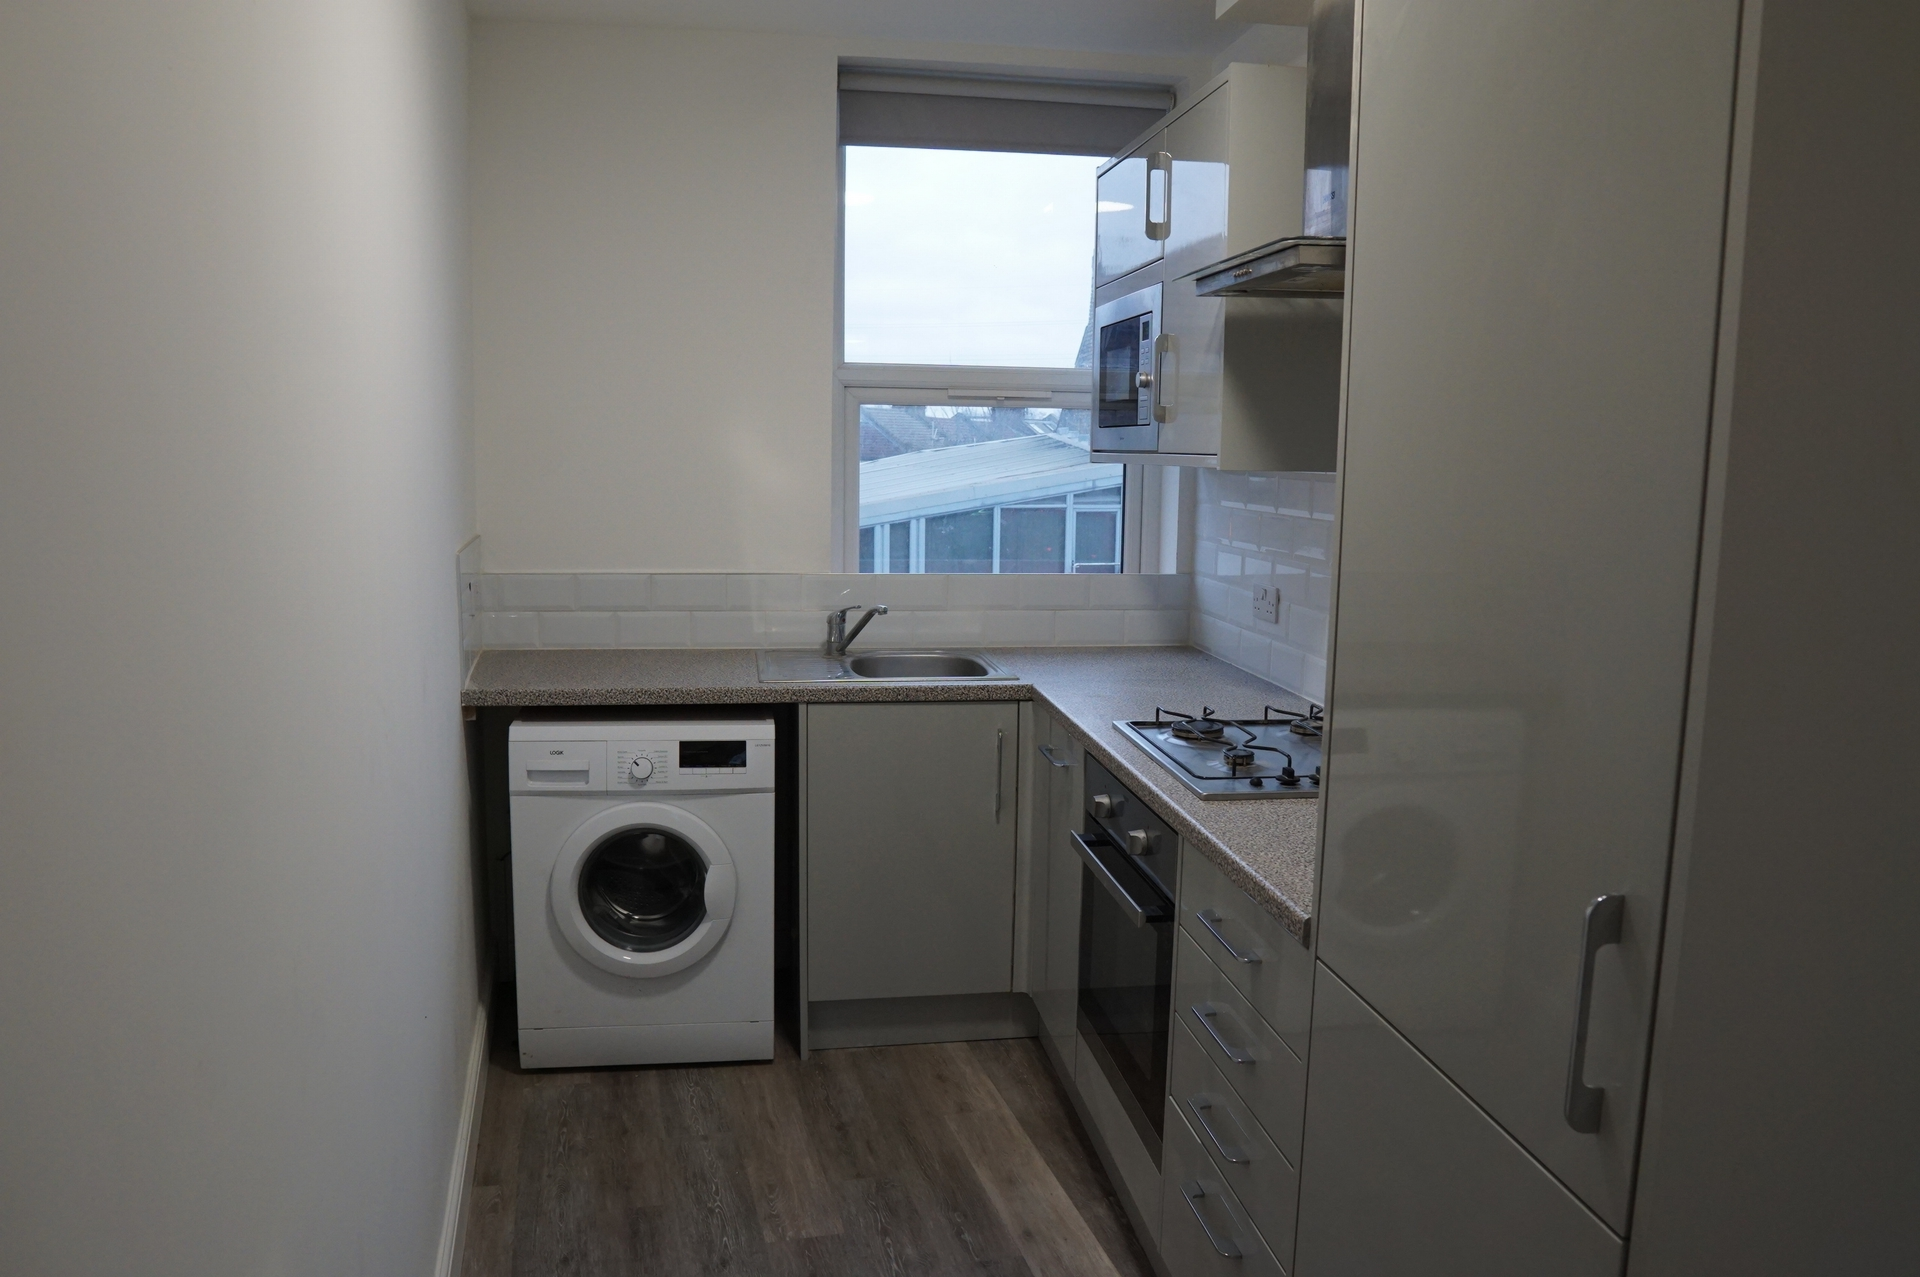 2 Bedroom Conversion to rent in Wimbledon, London, SW19